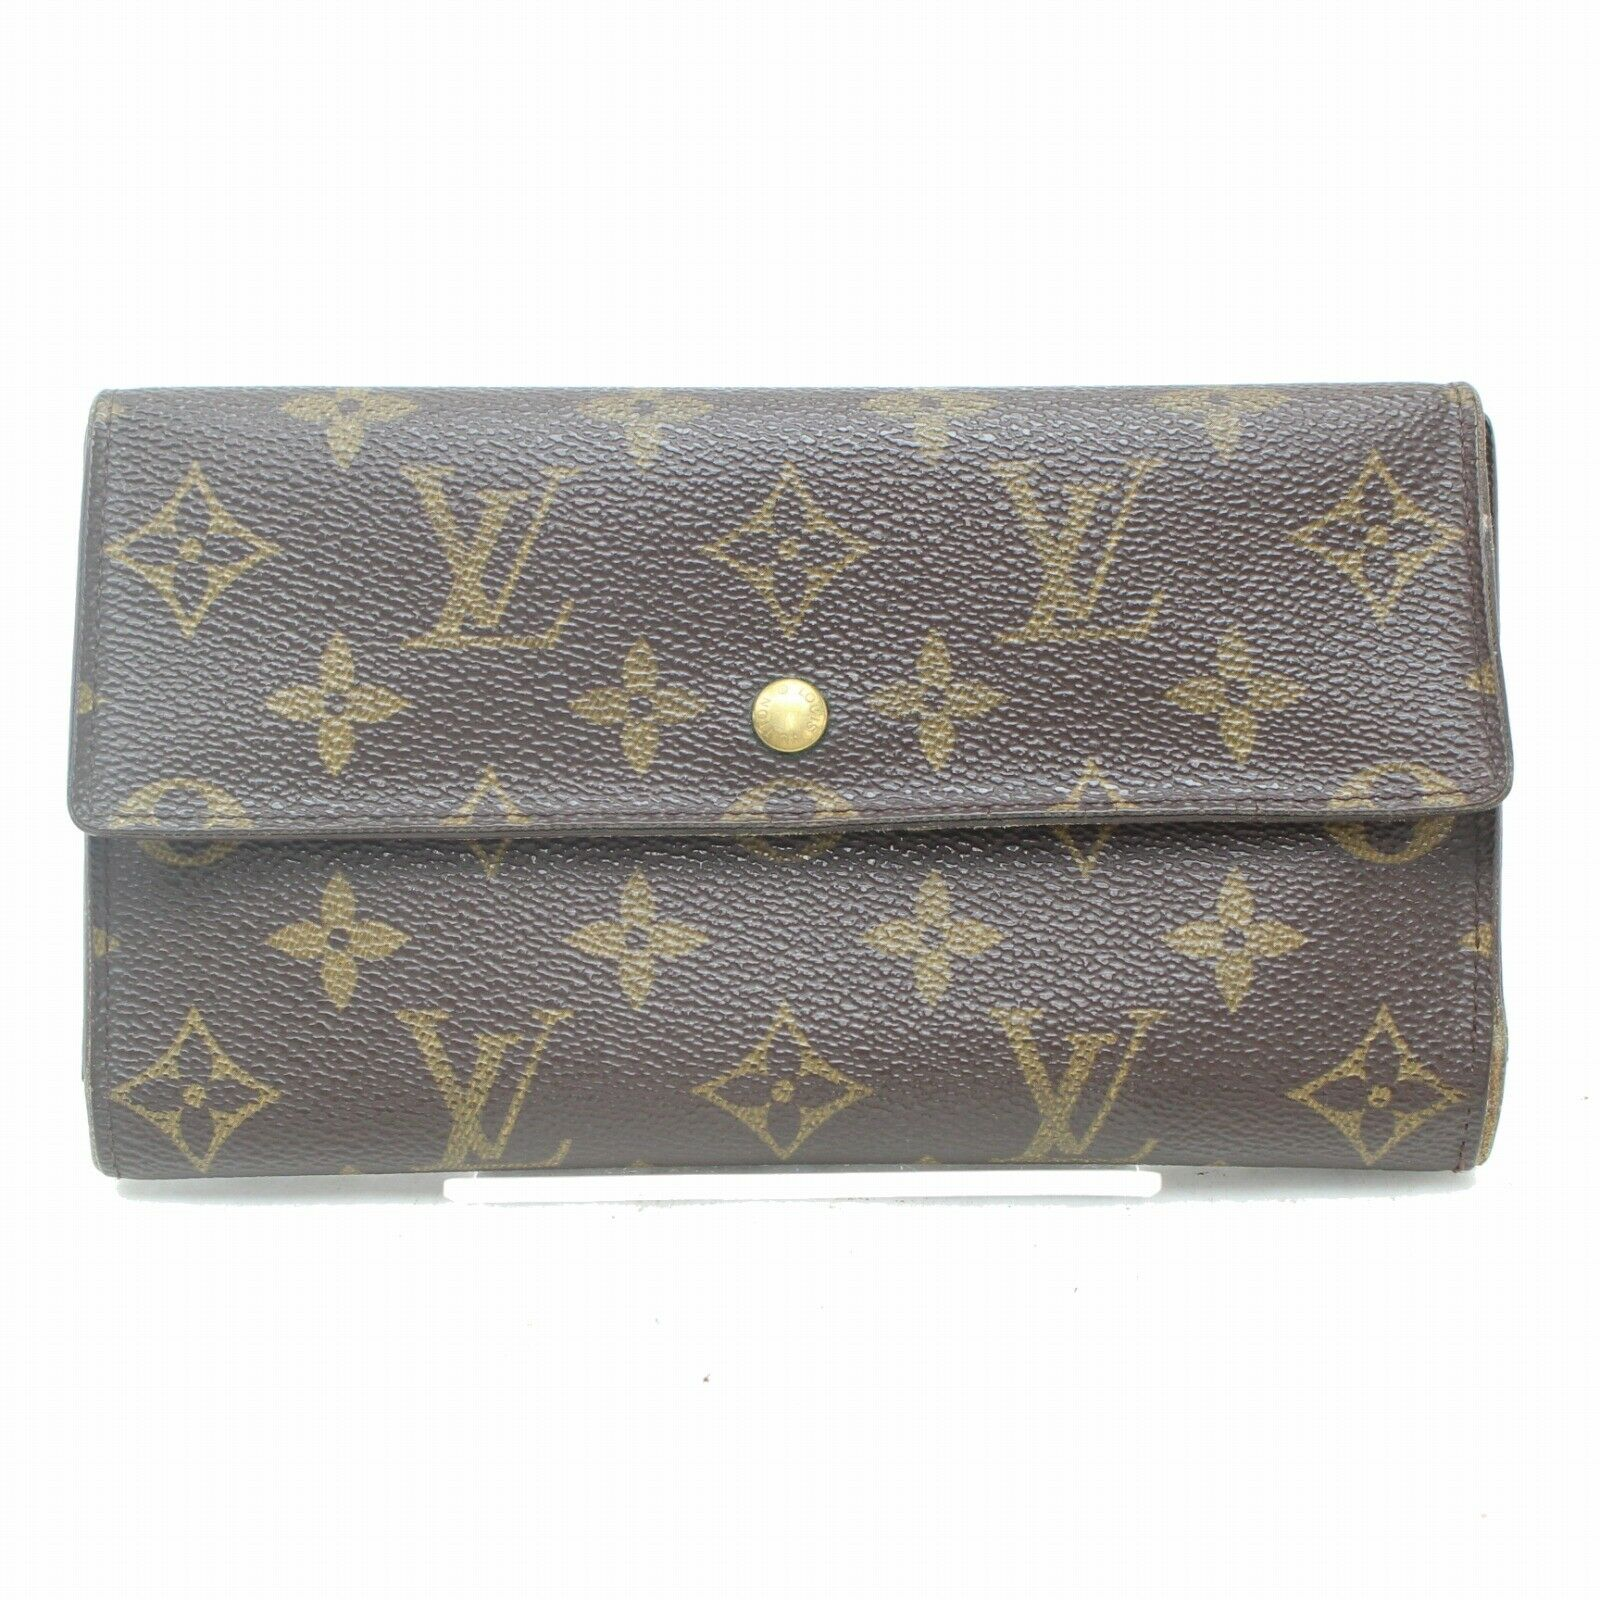 Louis Vuitton Portefeuille Tresor International M61215 Brown Long Wallet 11277